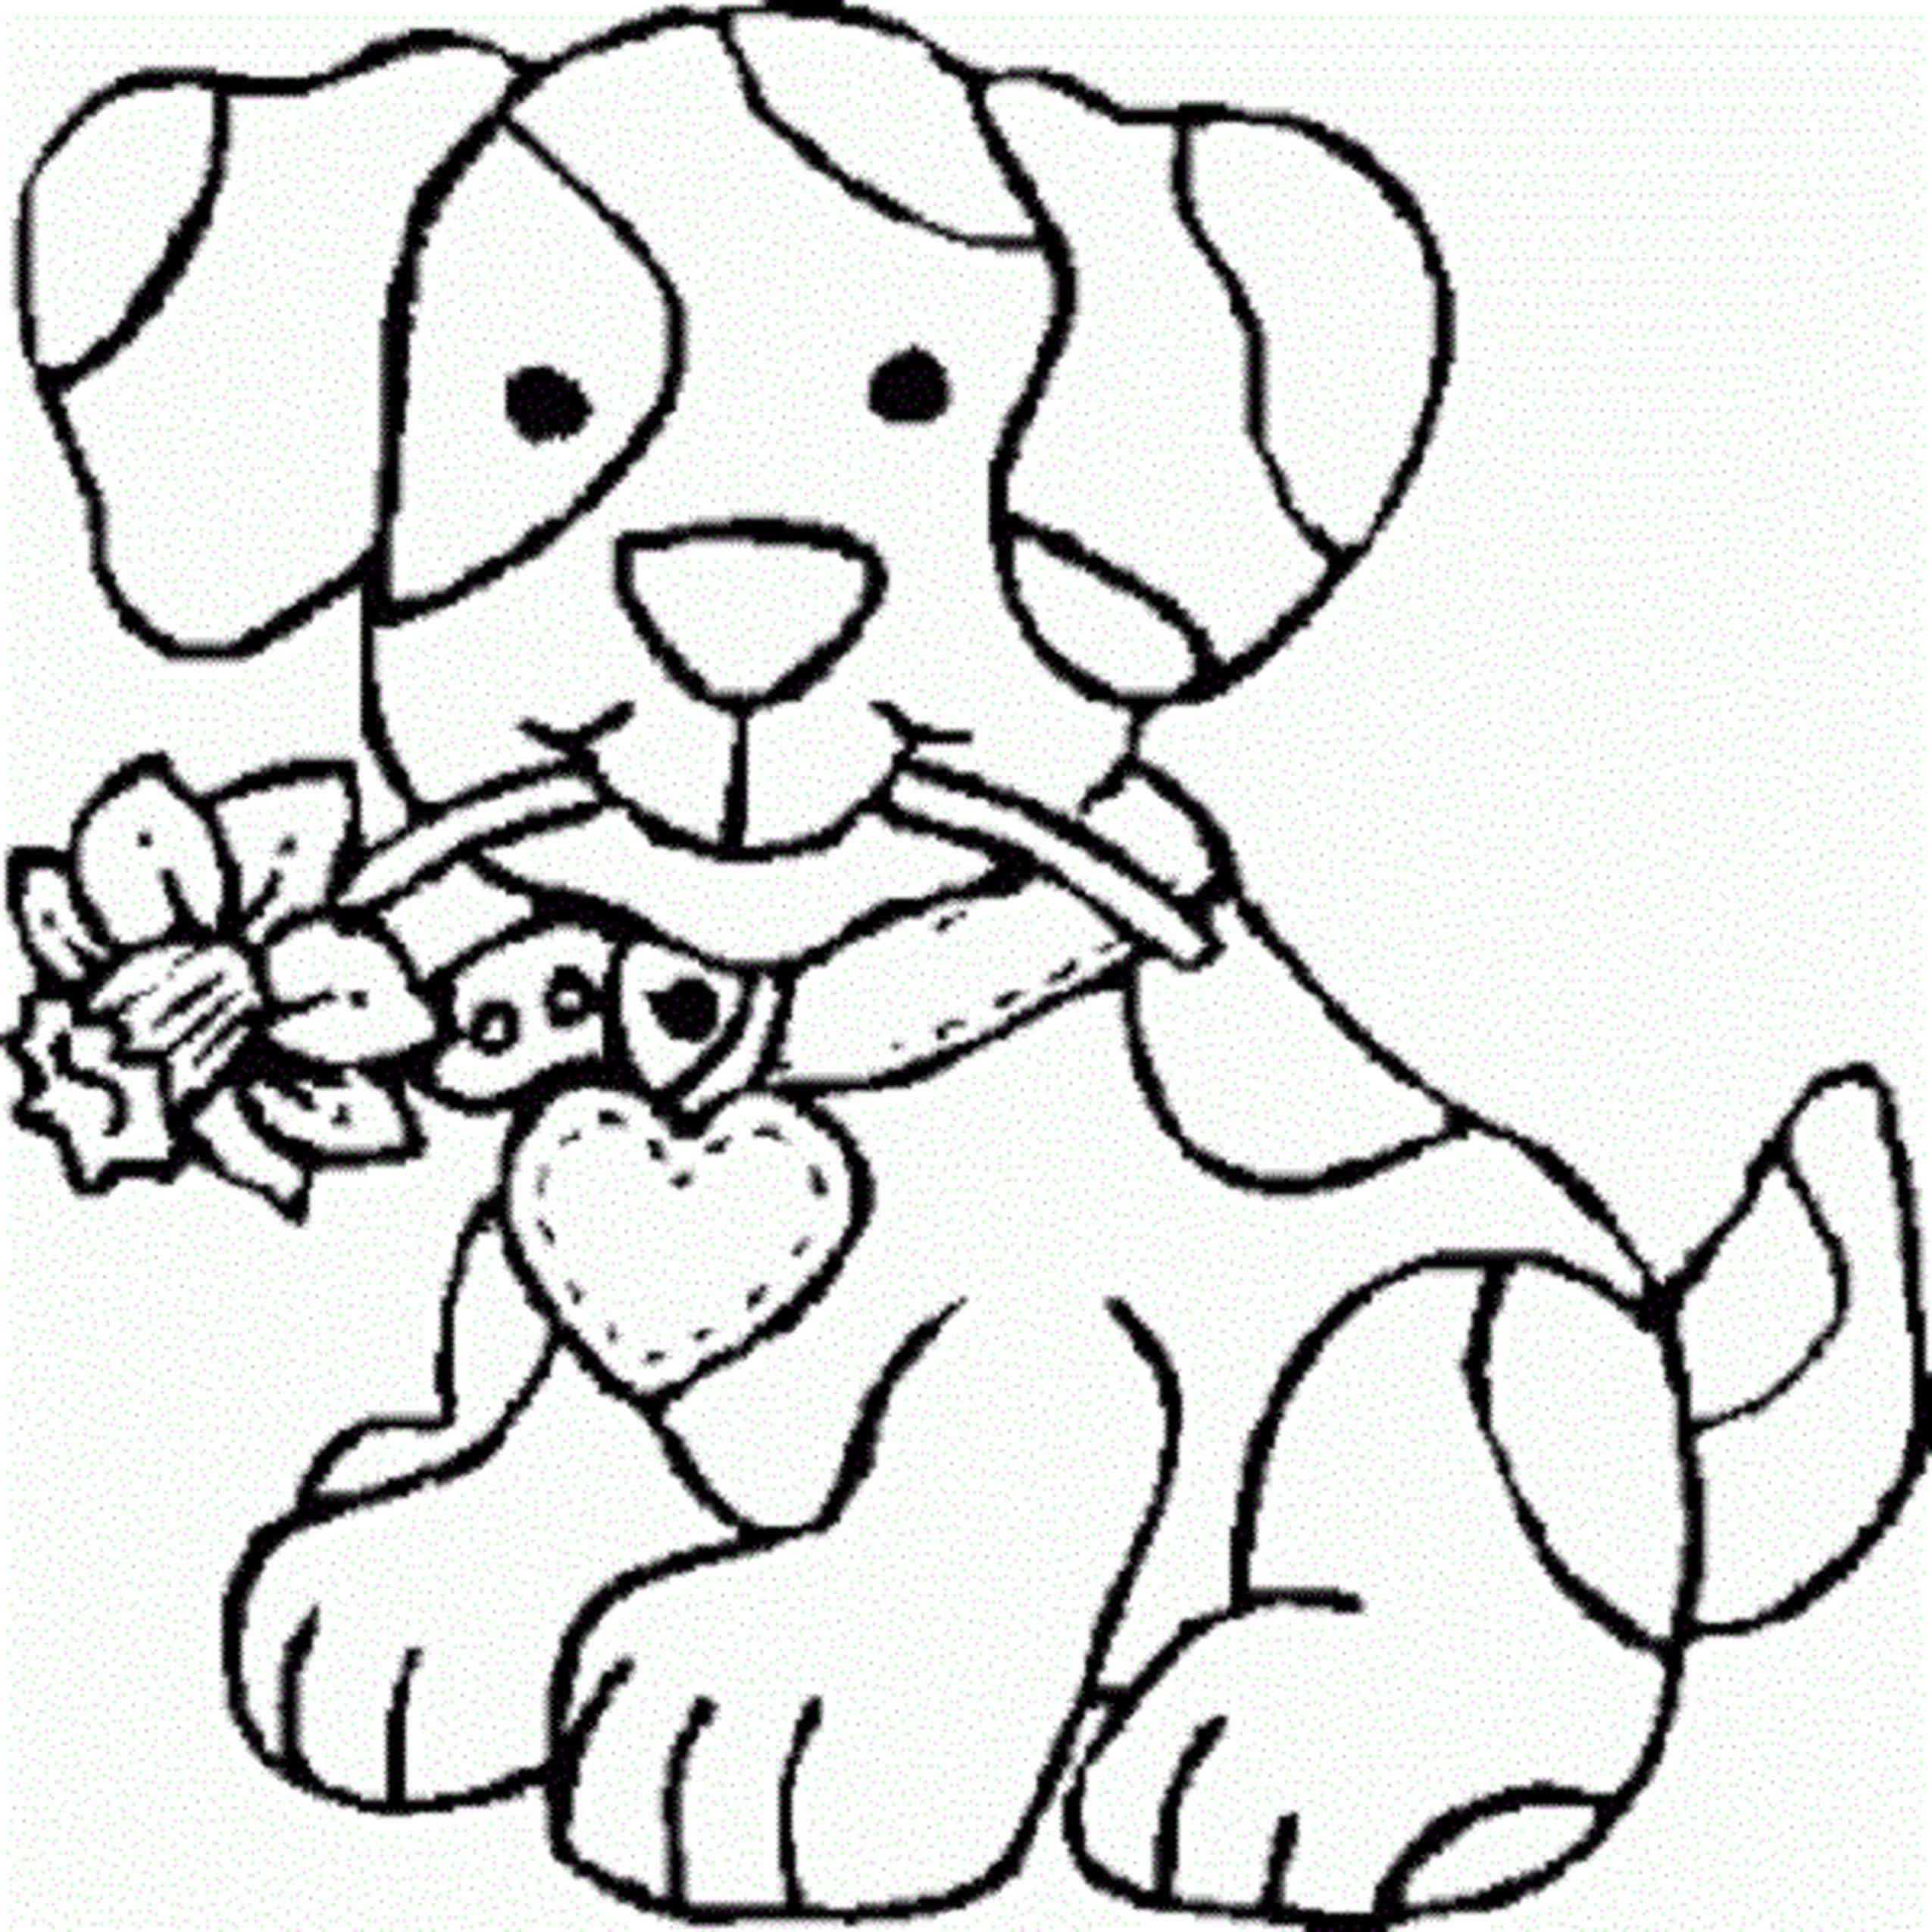 Free coloring pages for girls | Colorings | Pinterest ...